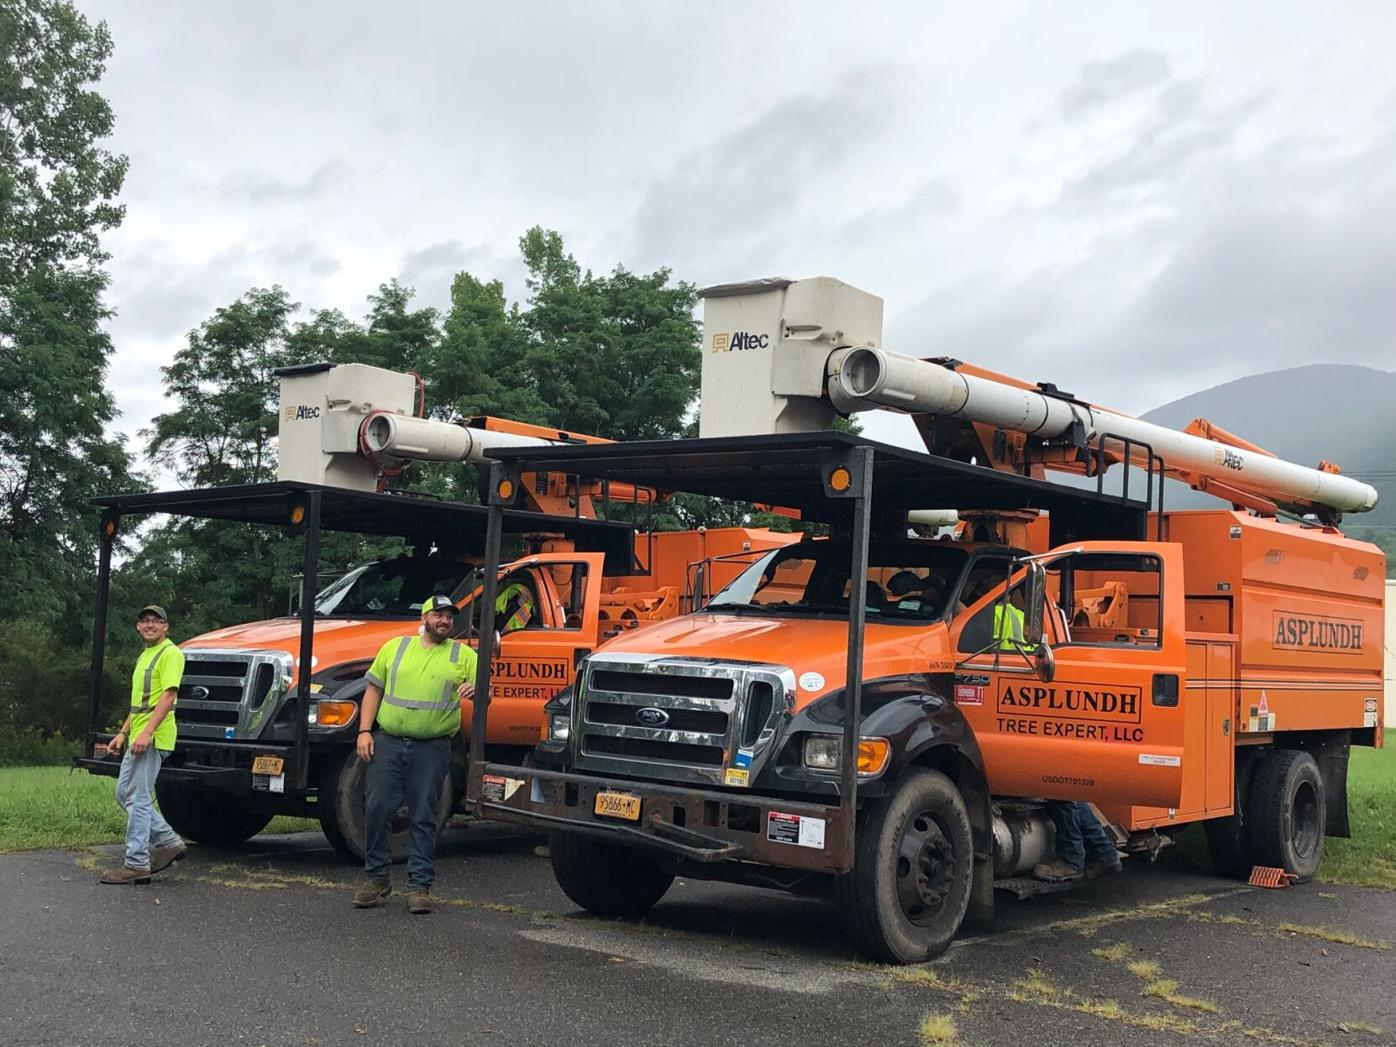 Workers standing next to tree and power line trucks